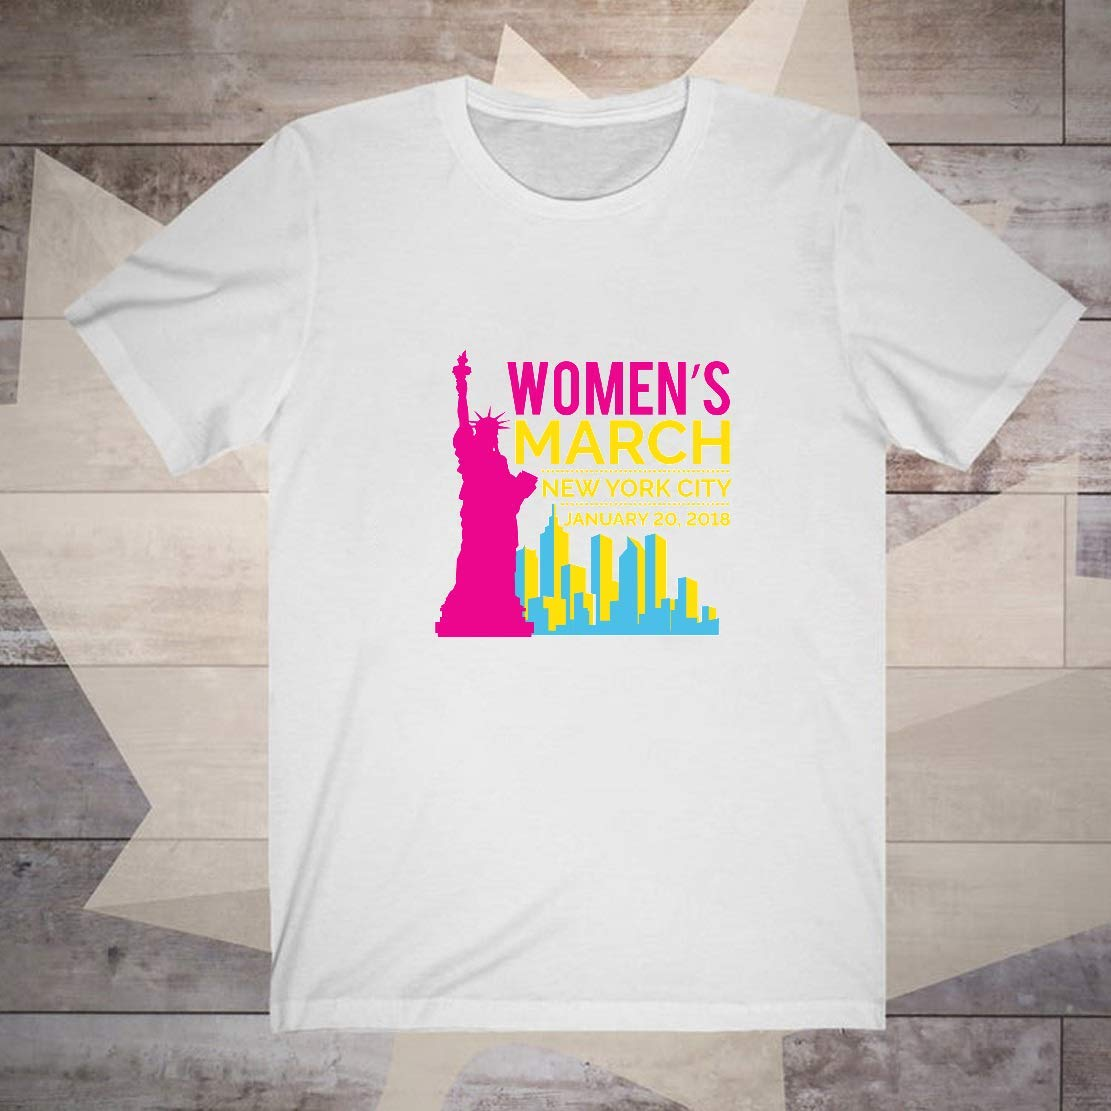 March Nyc January 20 2018 Durable T Shirts To Go To Movie Parties And The Whole Year